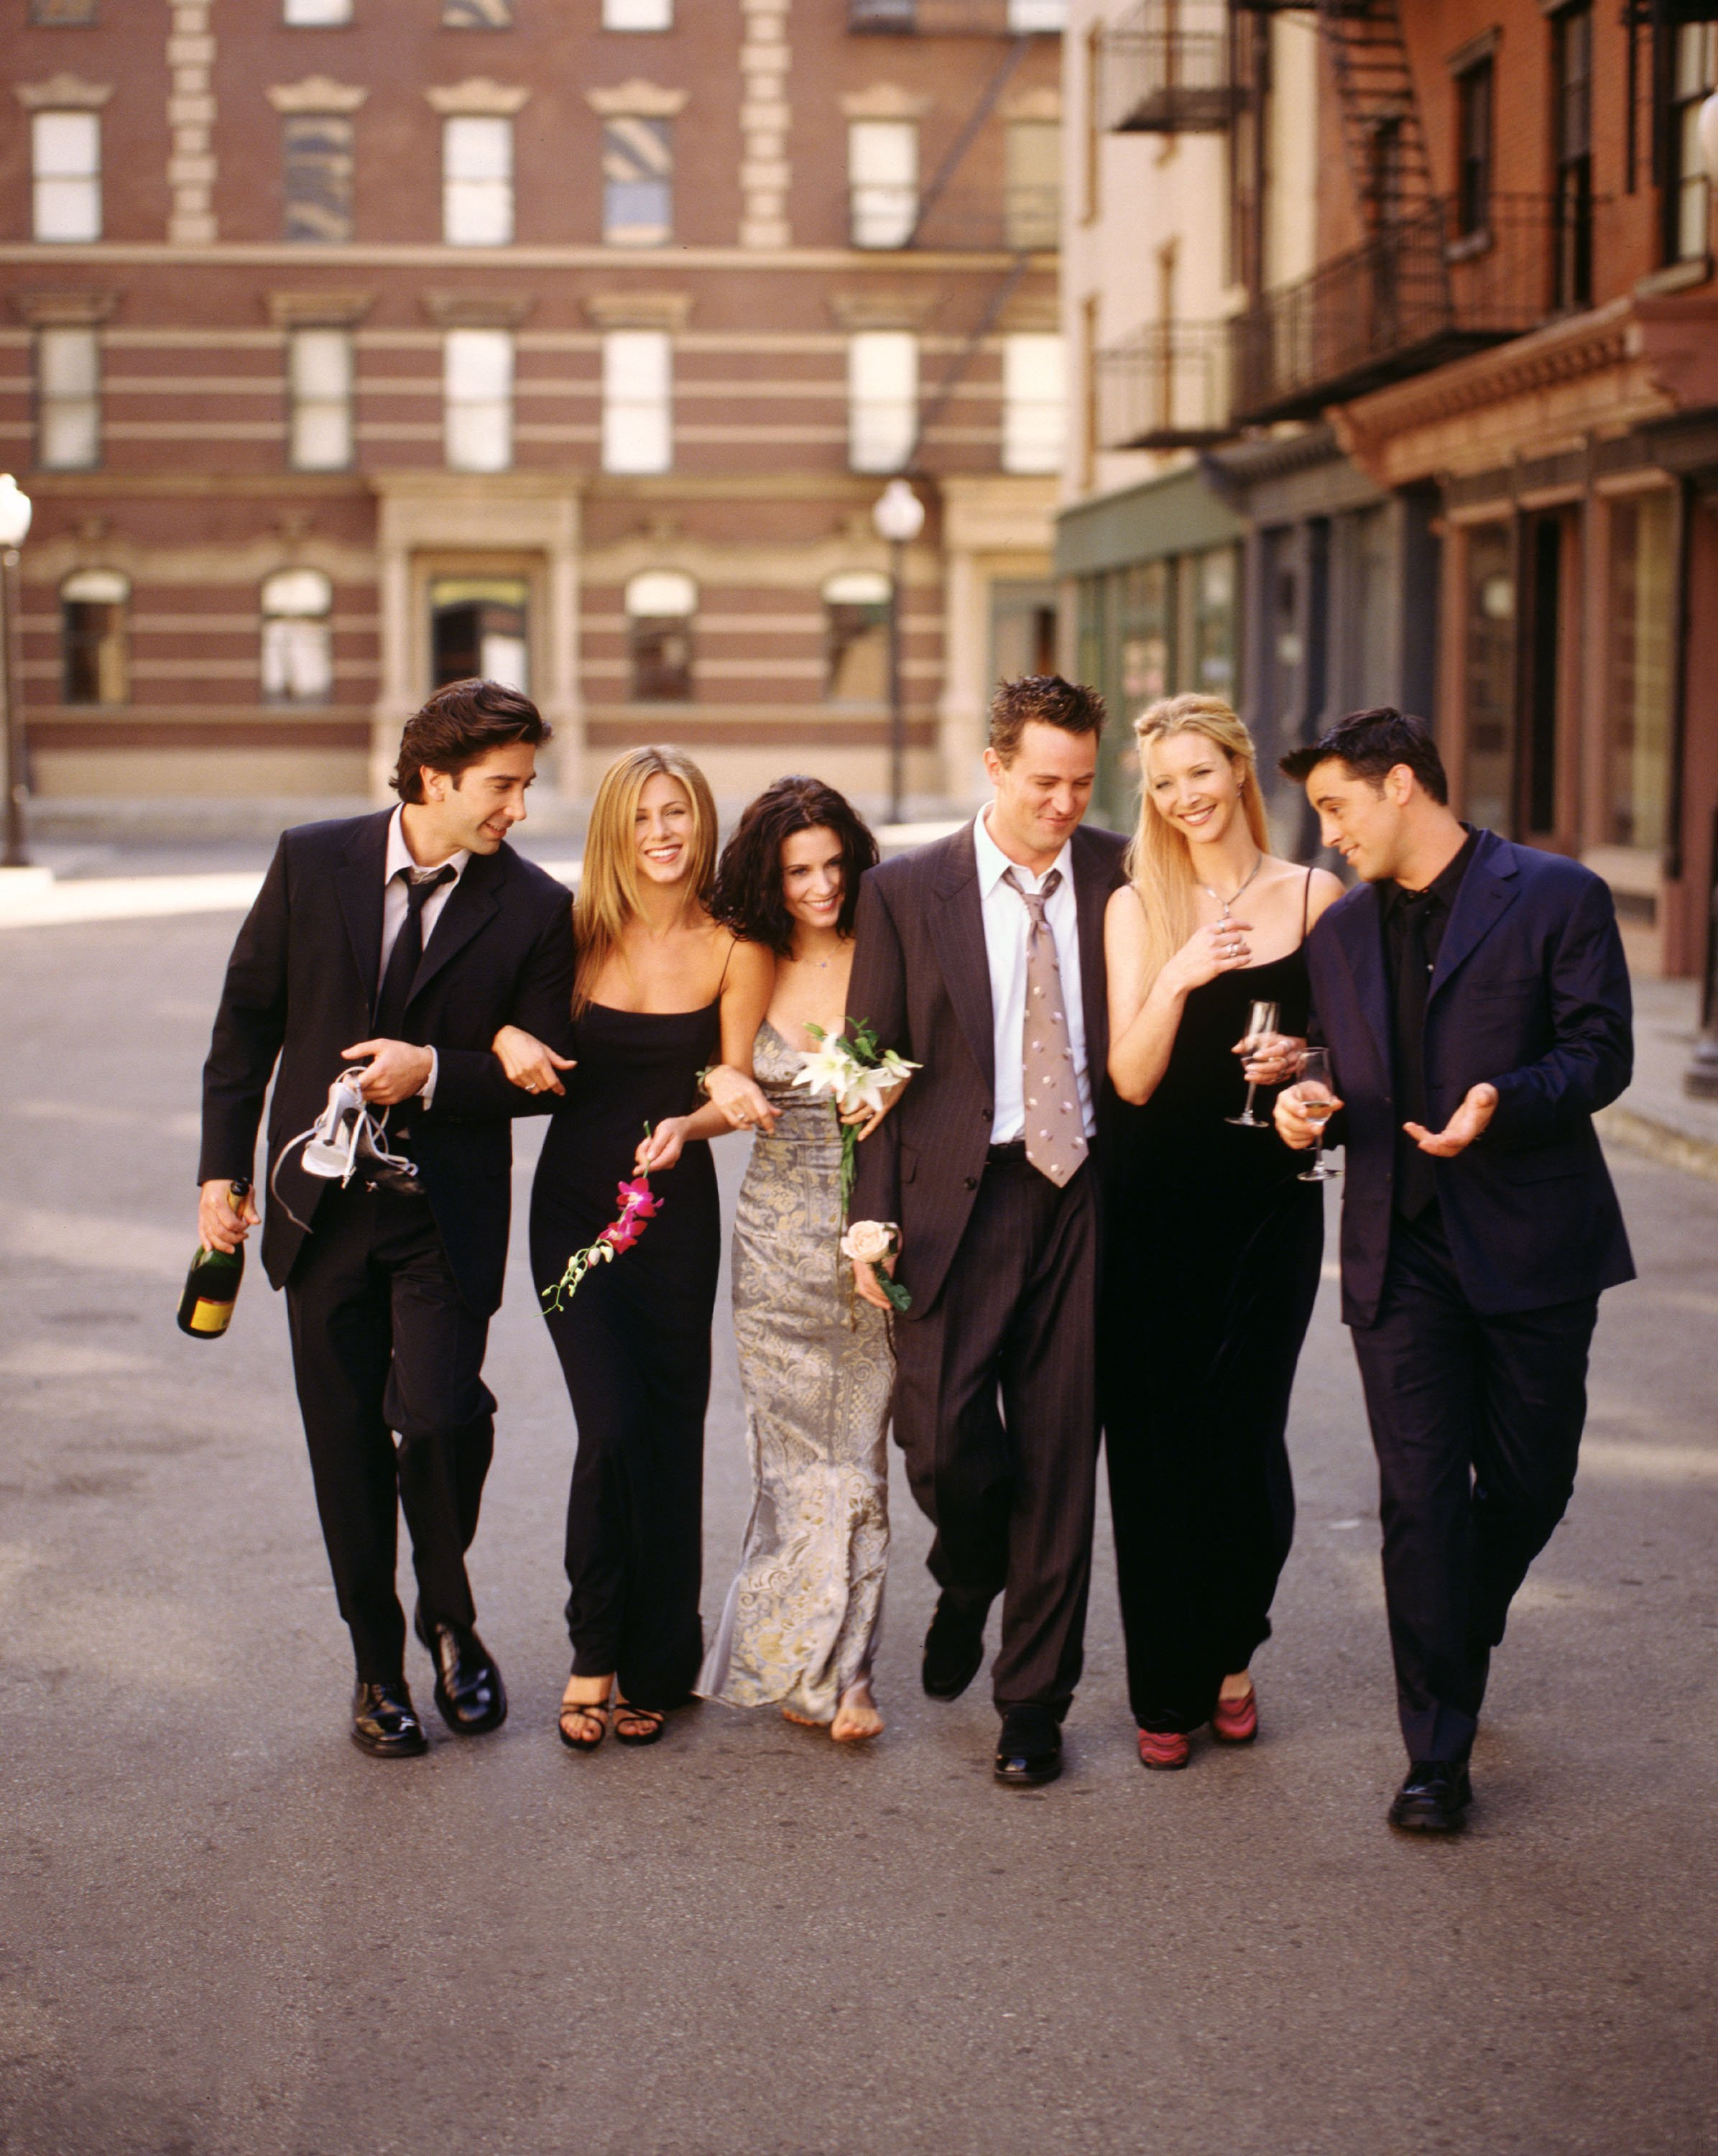 "A snapshot of the cast members of NBC's comedy series ""Friends"" including David Schwimmer, Jennifer Aniston, Courteney Cox, Matthew Perry, Lisa Kudrow, Matt LeBlanc taken in 2001. 